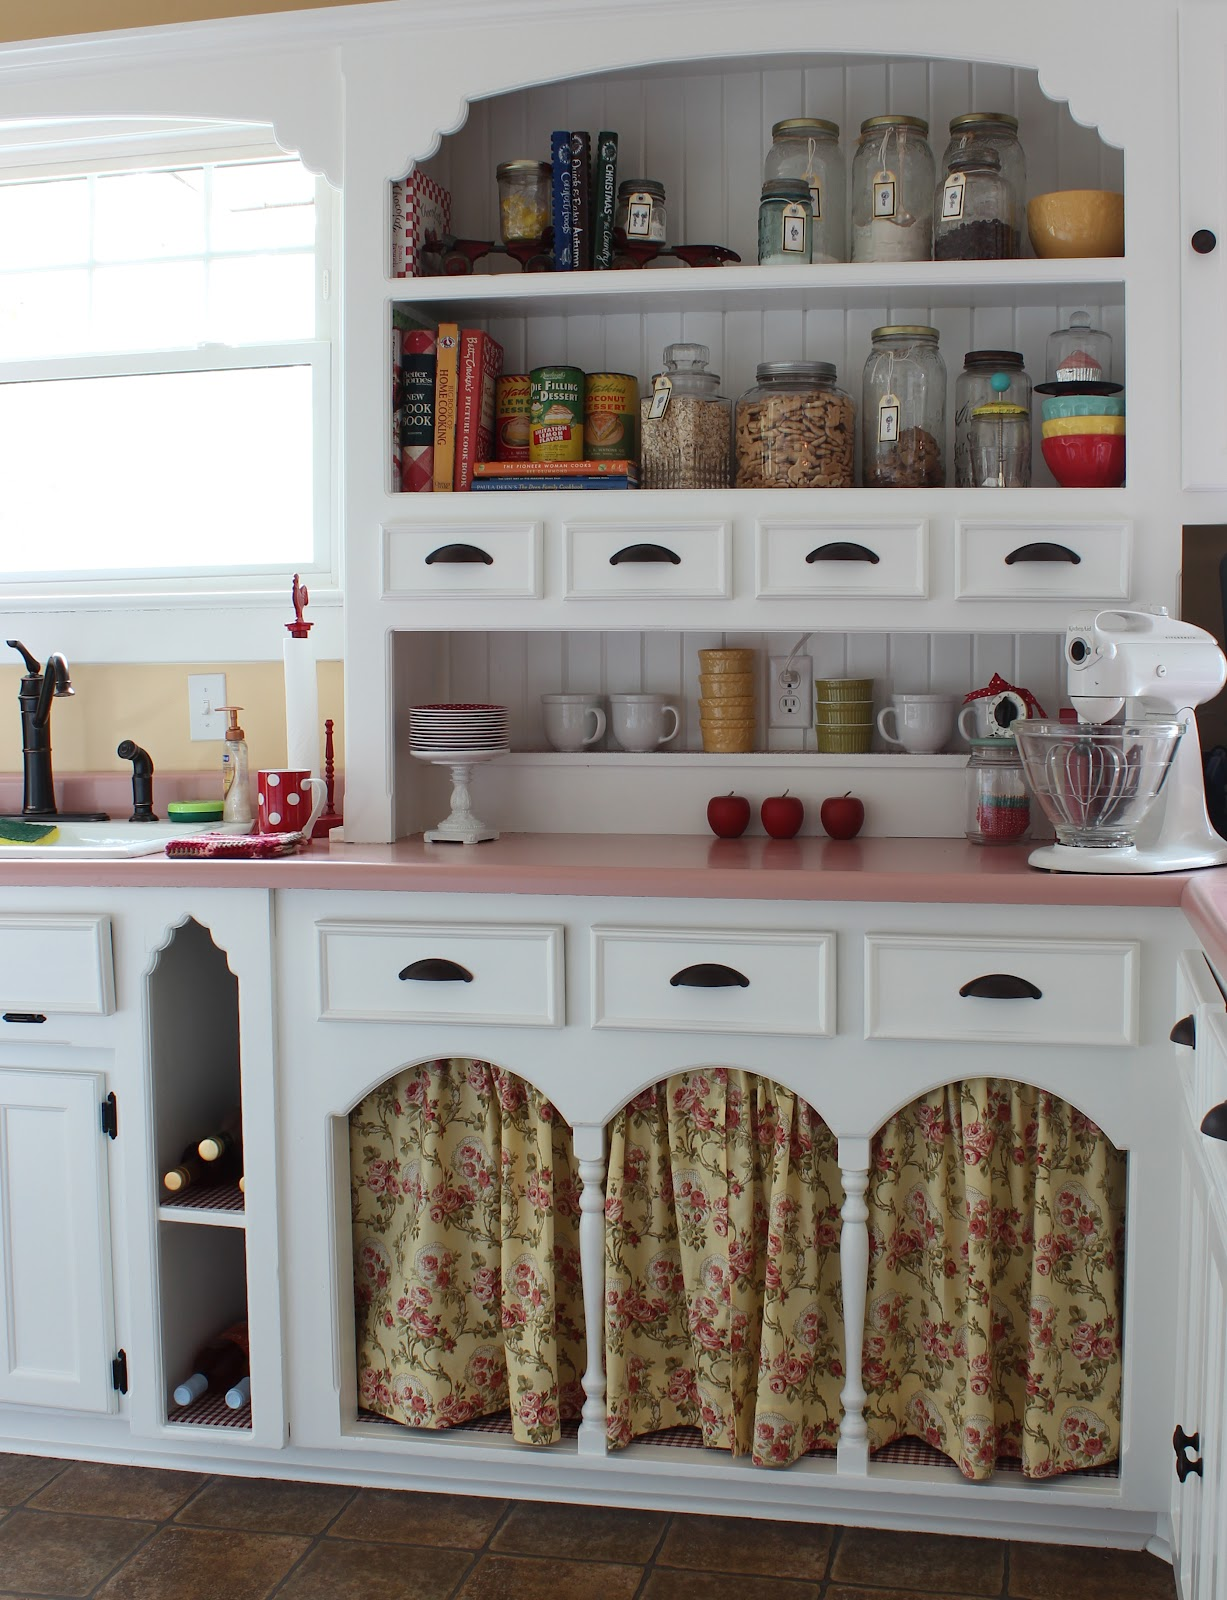 Kitchens with Pink Countertops